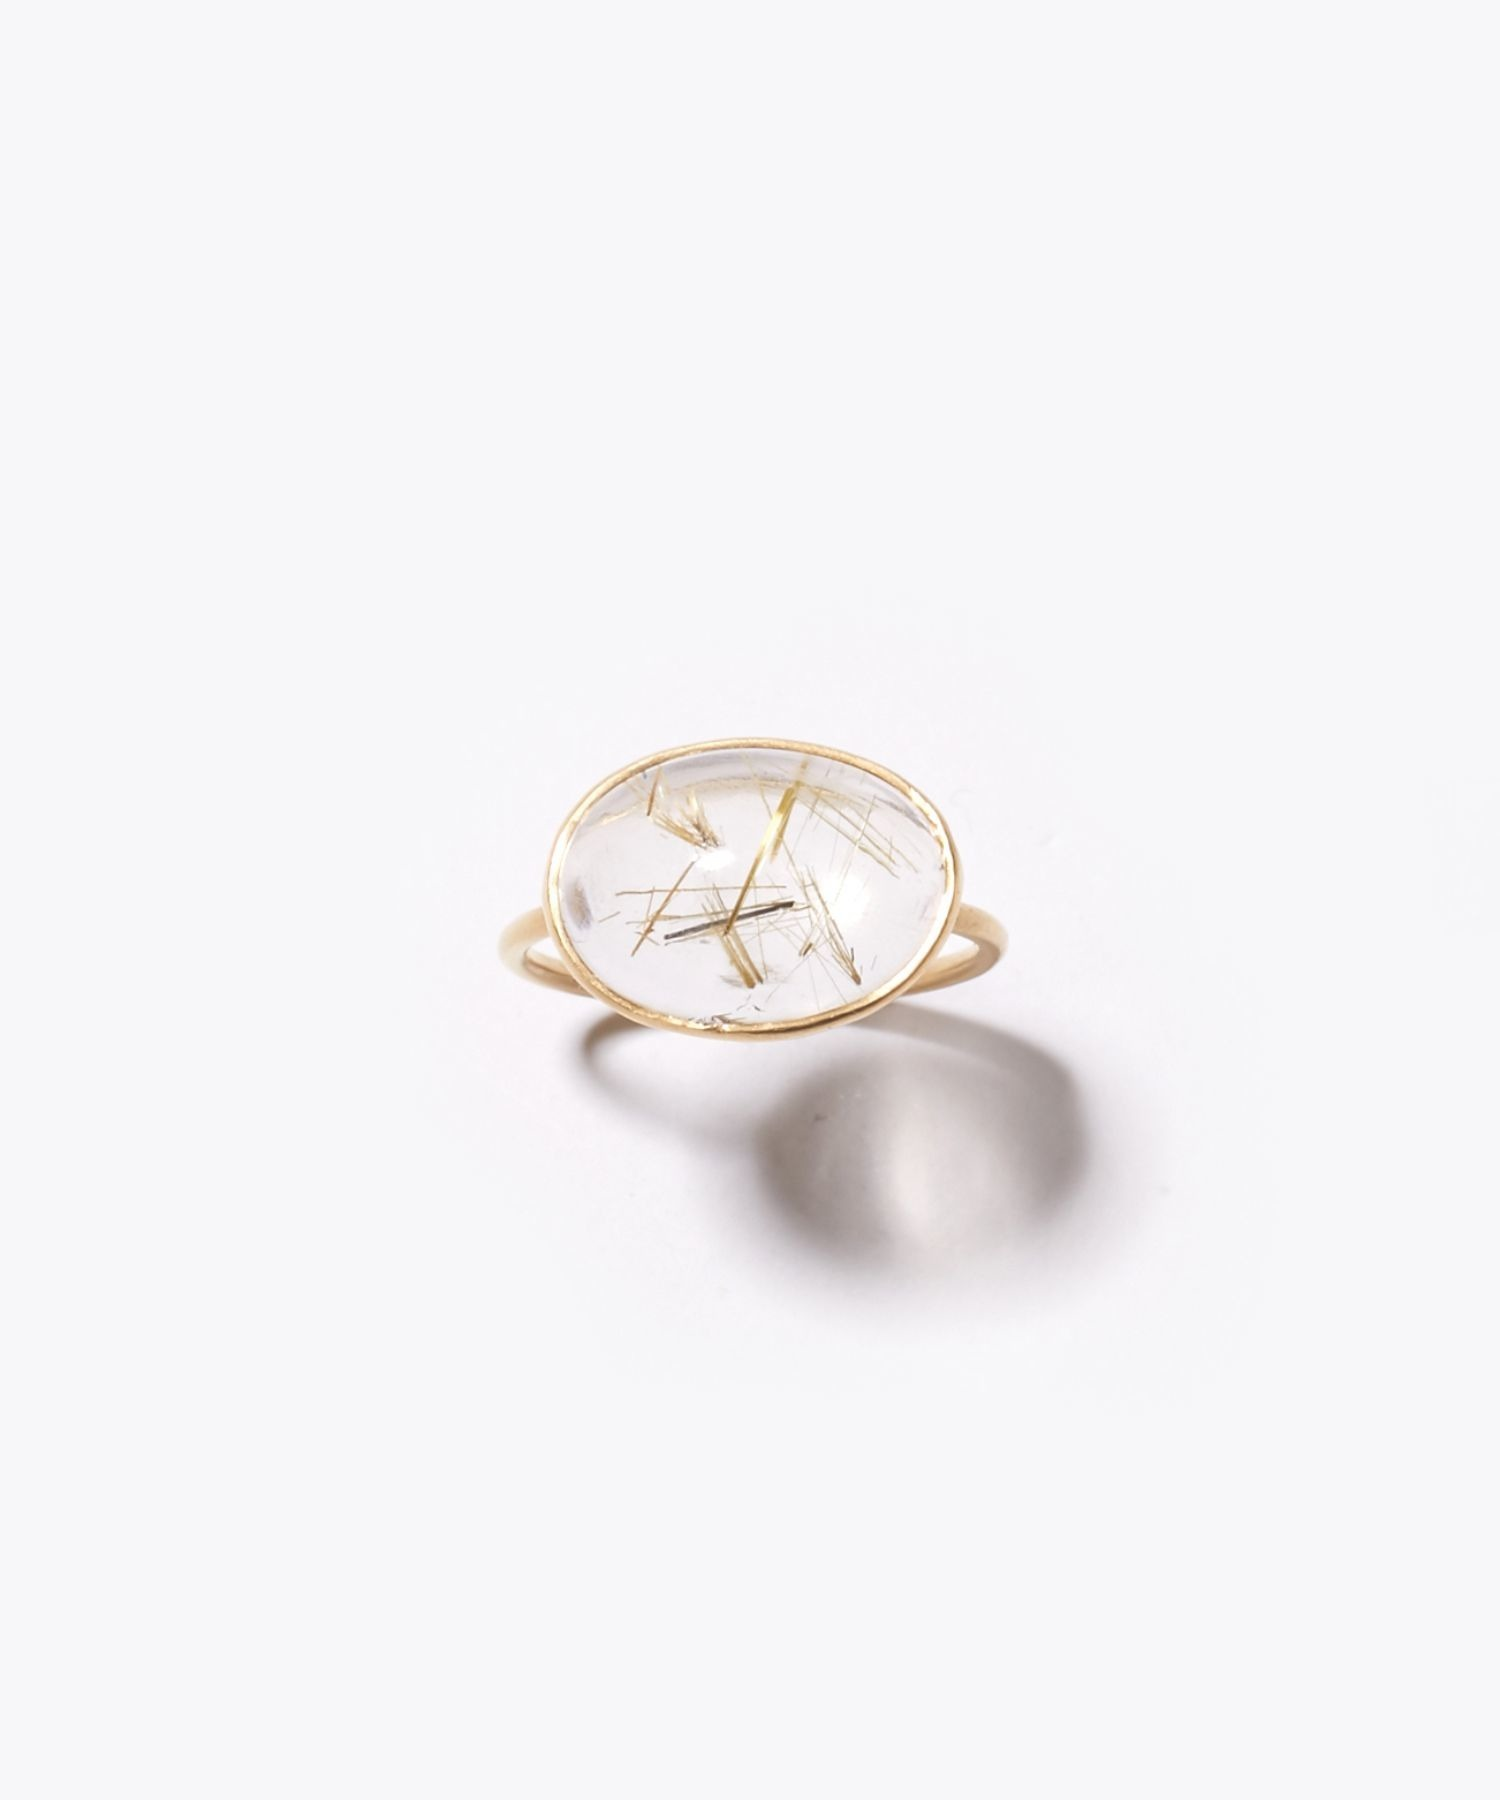 [eutopia] K10 cabochon gold rutilated quartz ring